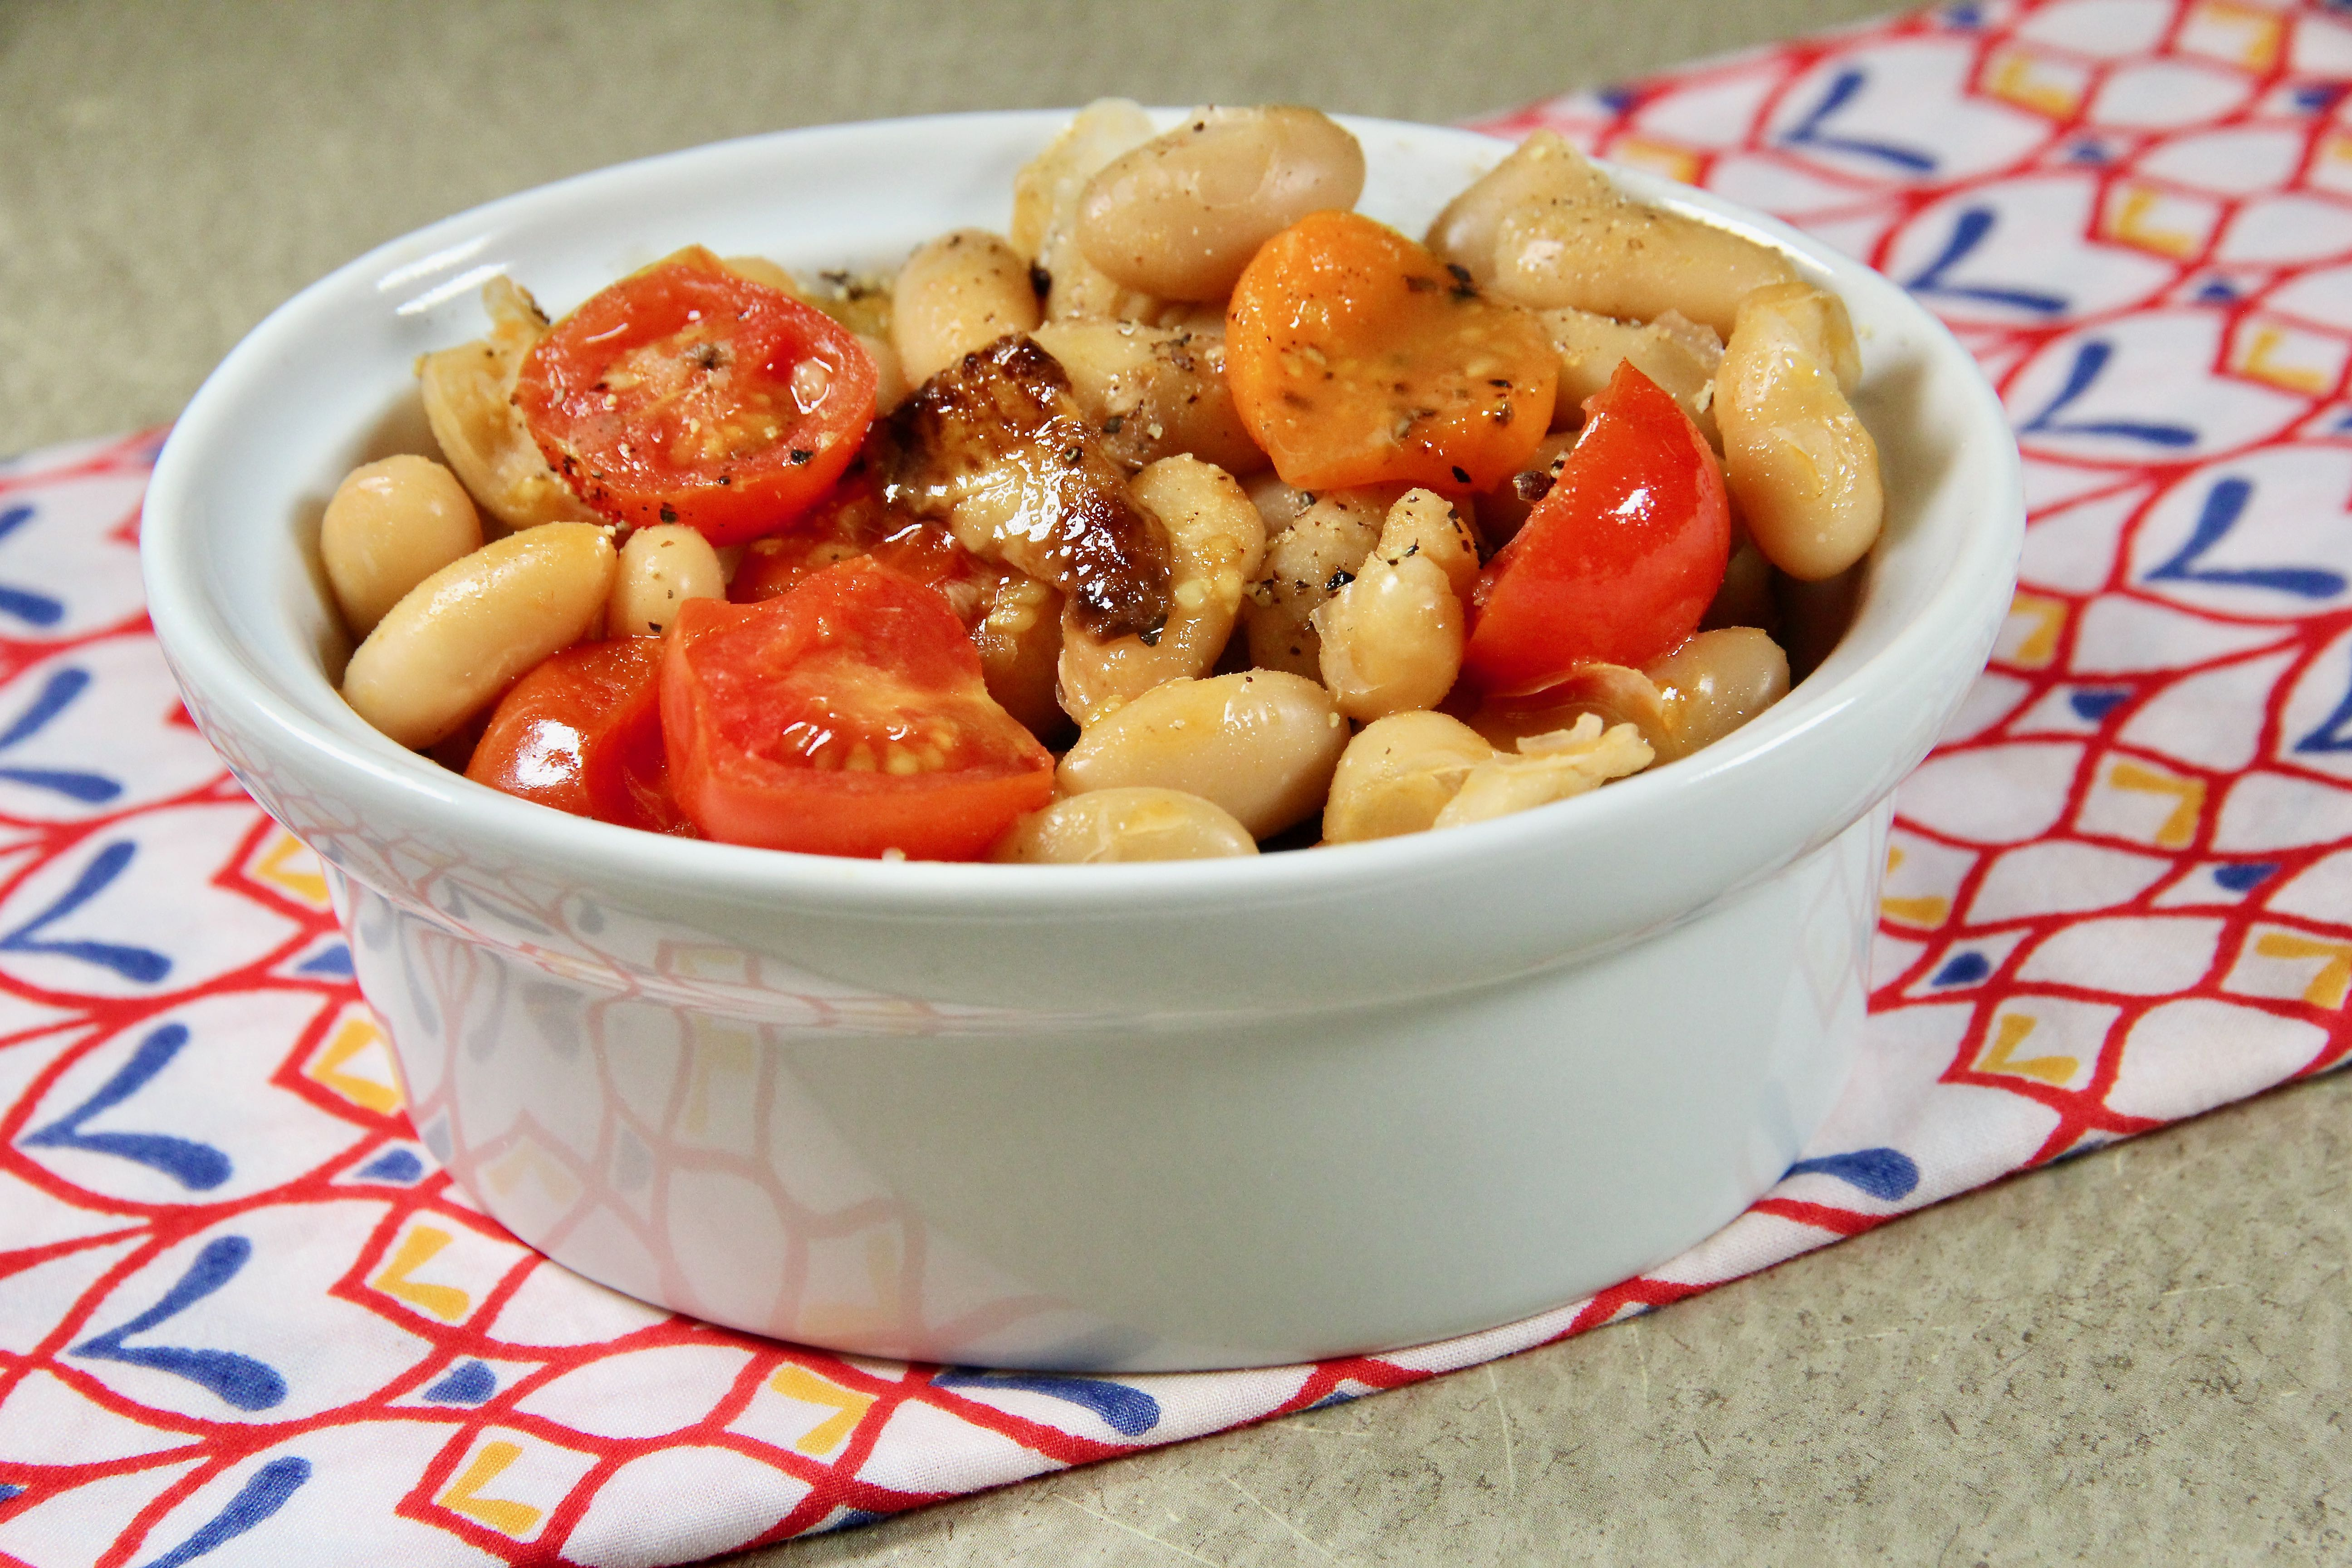 Tomatoes and Beans